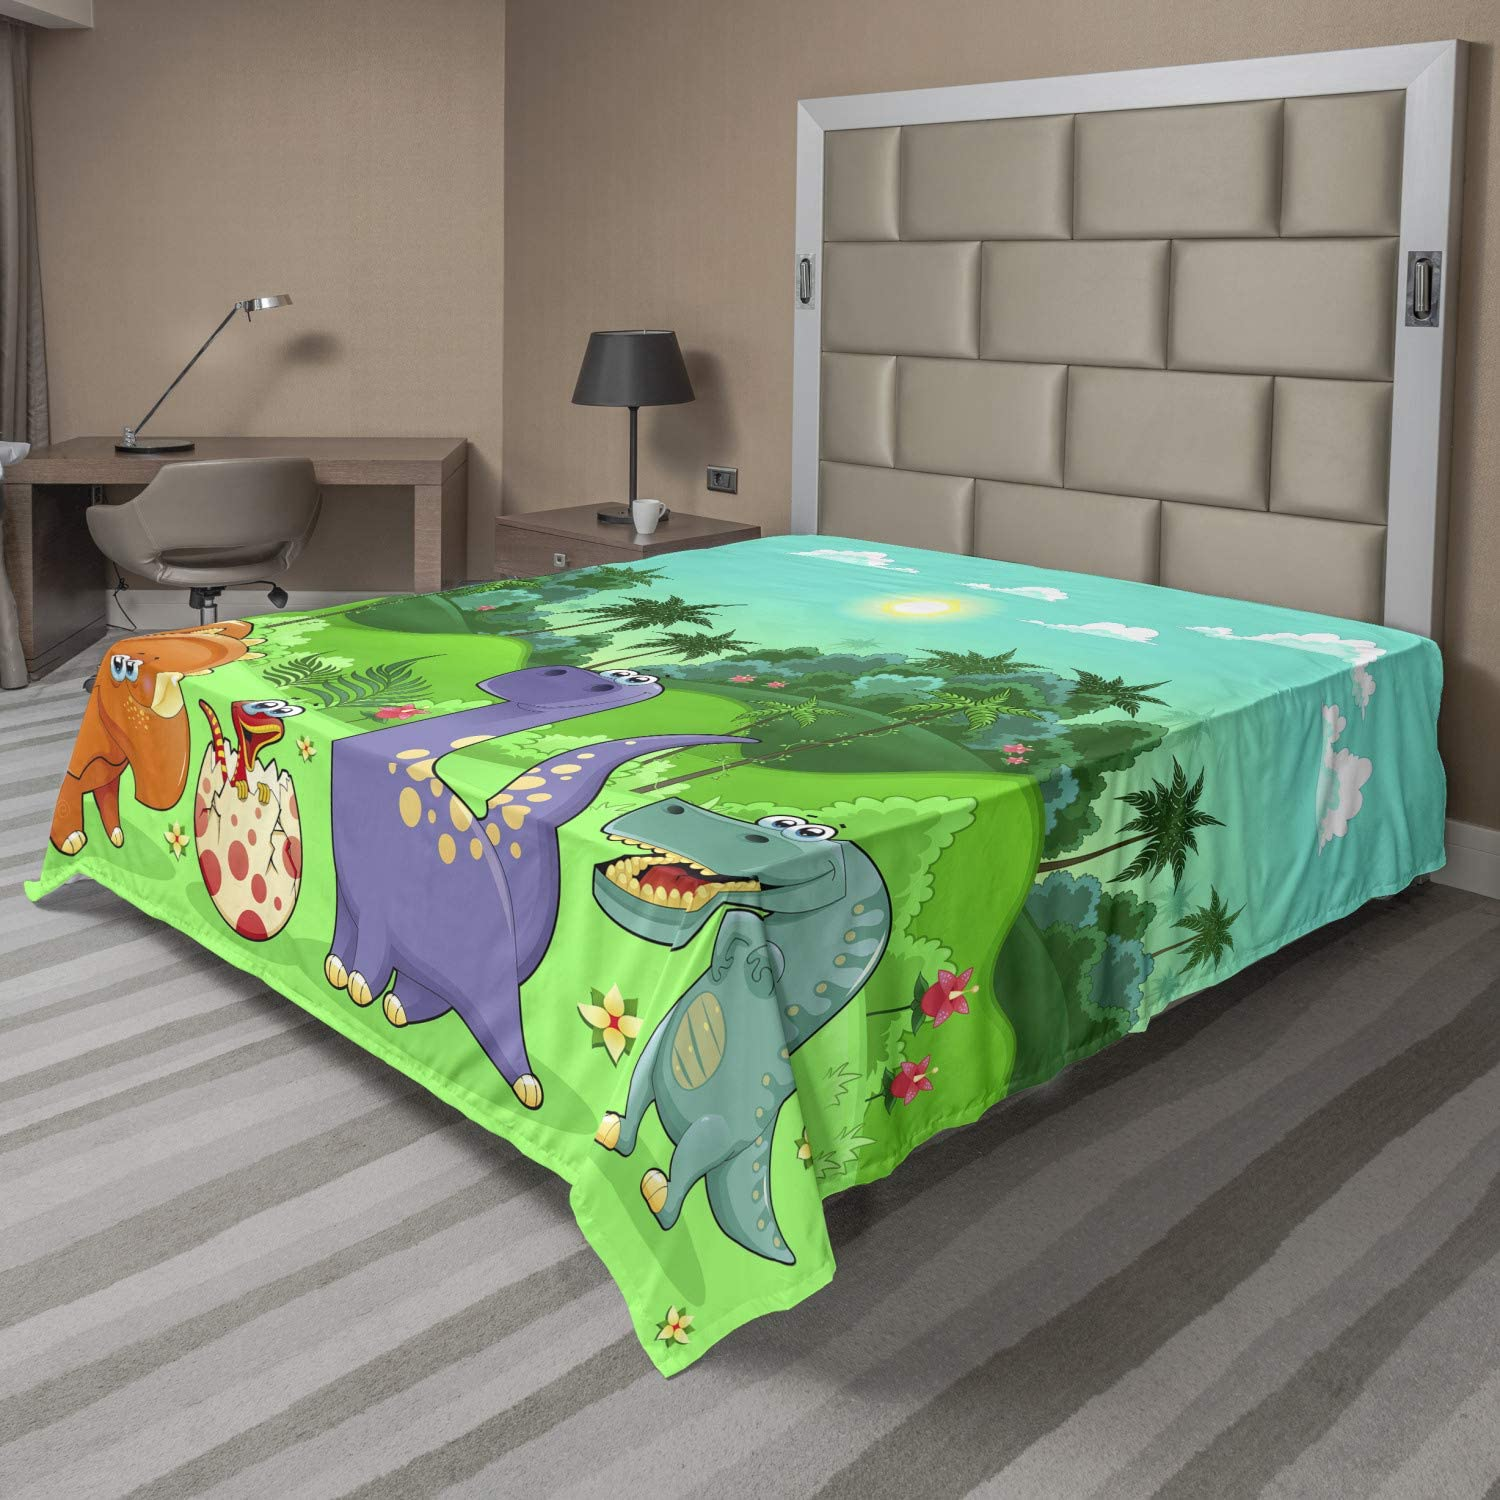 Ambesonne latest Cartoon Flat Sheet Funny Tropical Rainf Superior and Dinosaurs